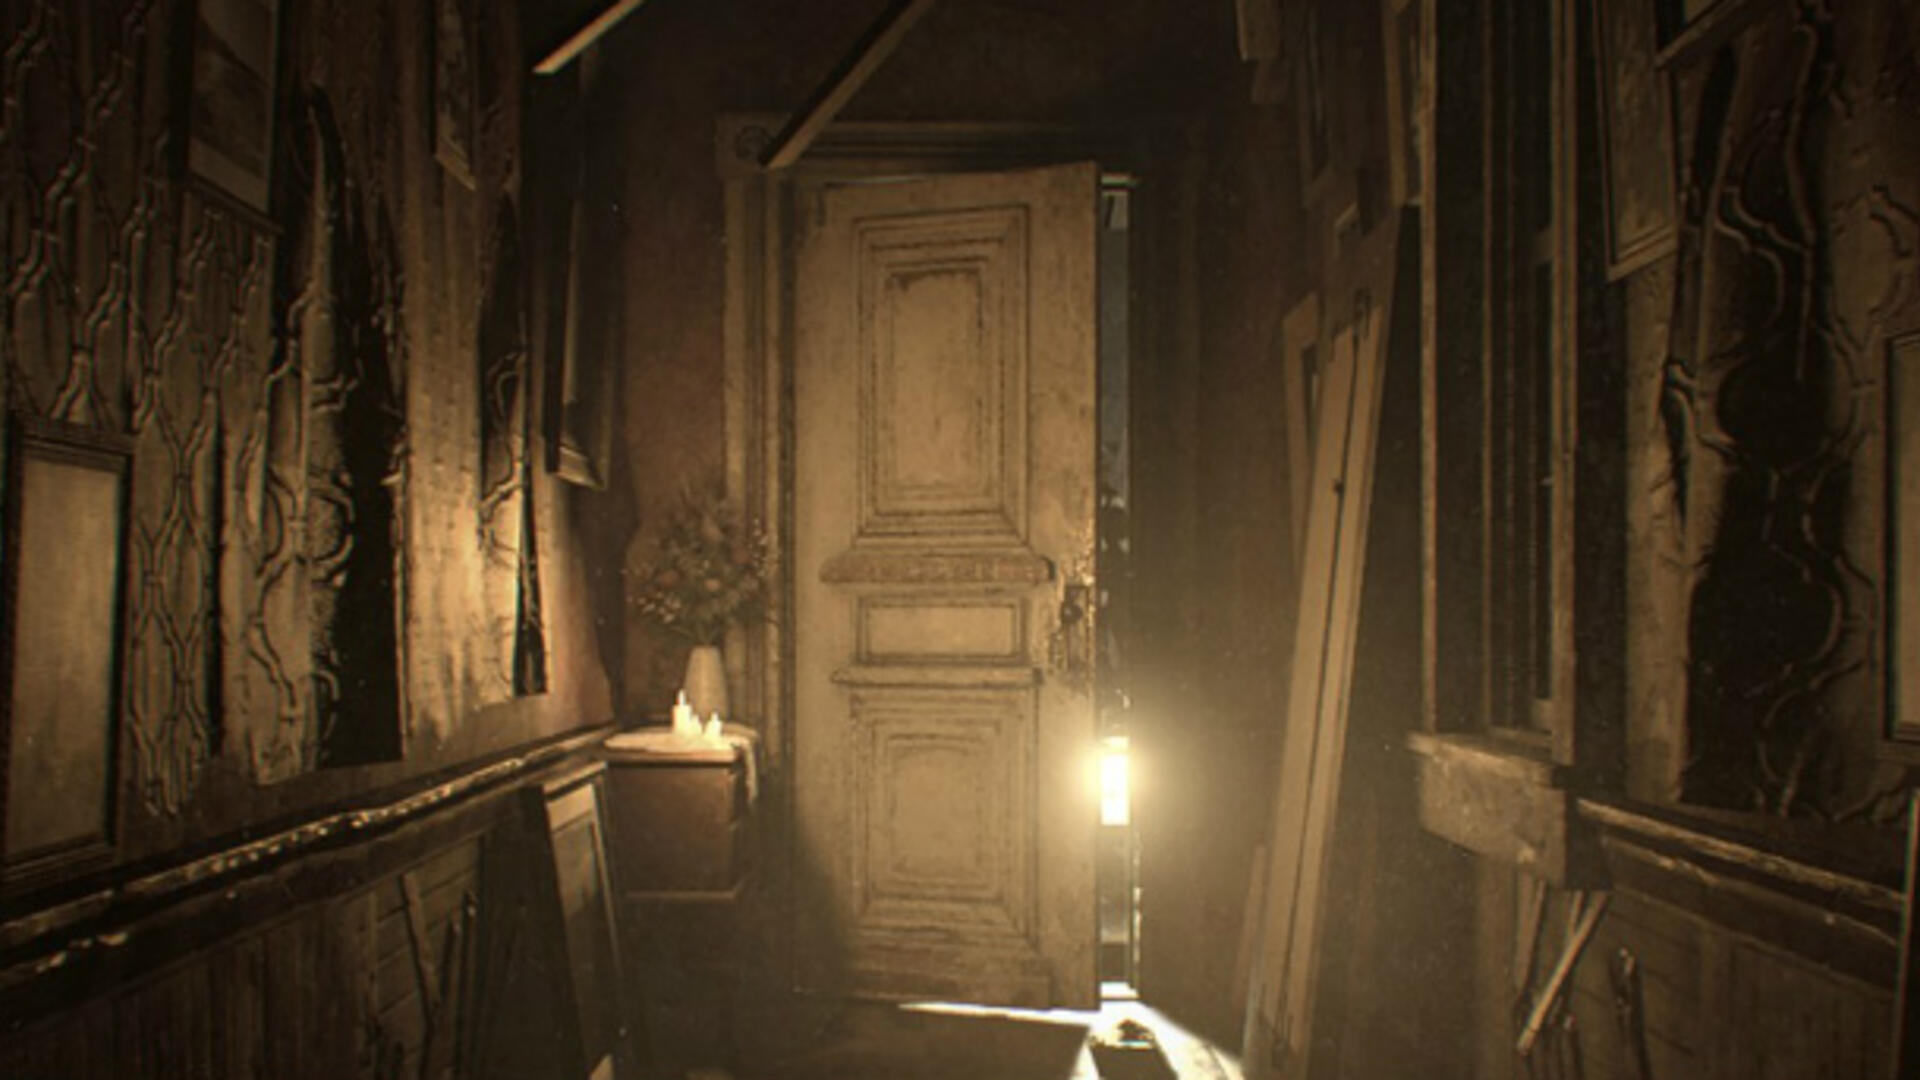 Resident Evil 7 Xbox One X Update Delivers a Terrifying 4K Experience